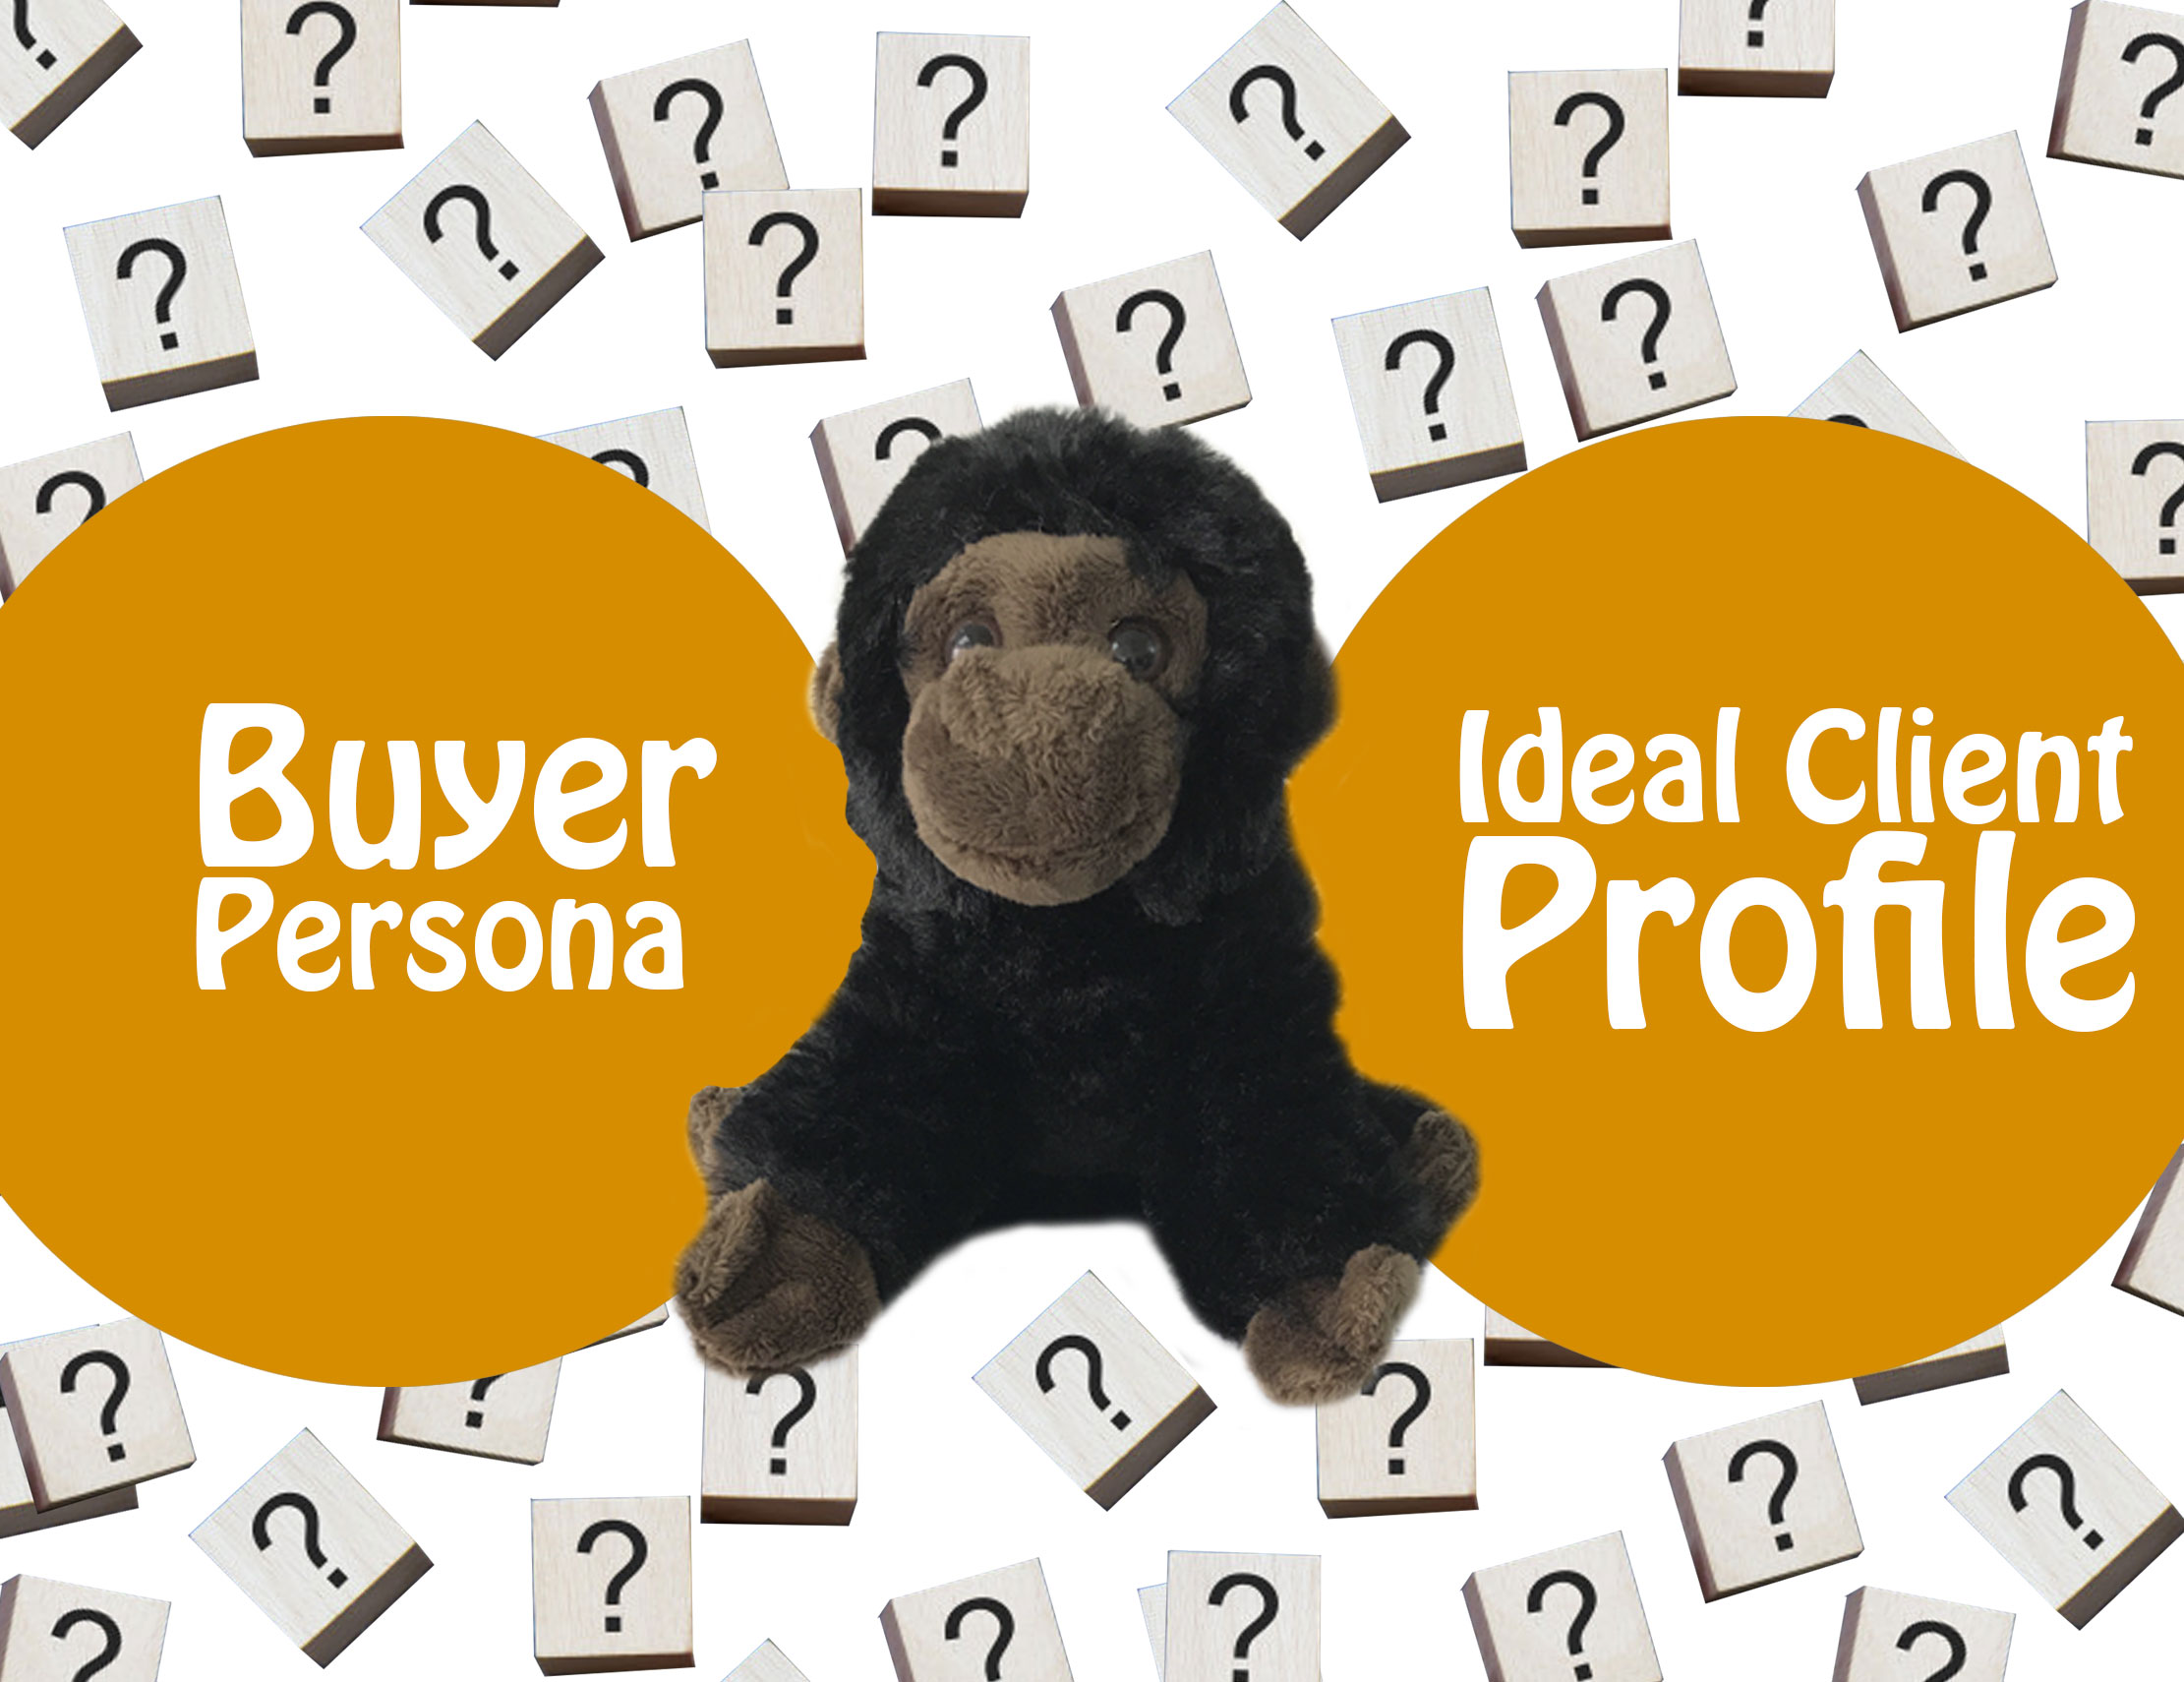 buyer-persona-o-ideal-client-profile-2